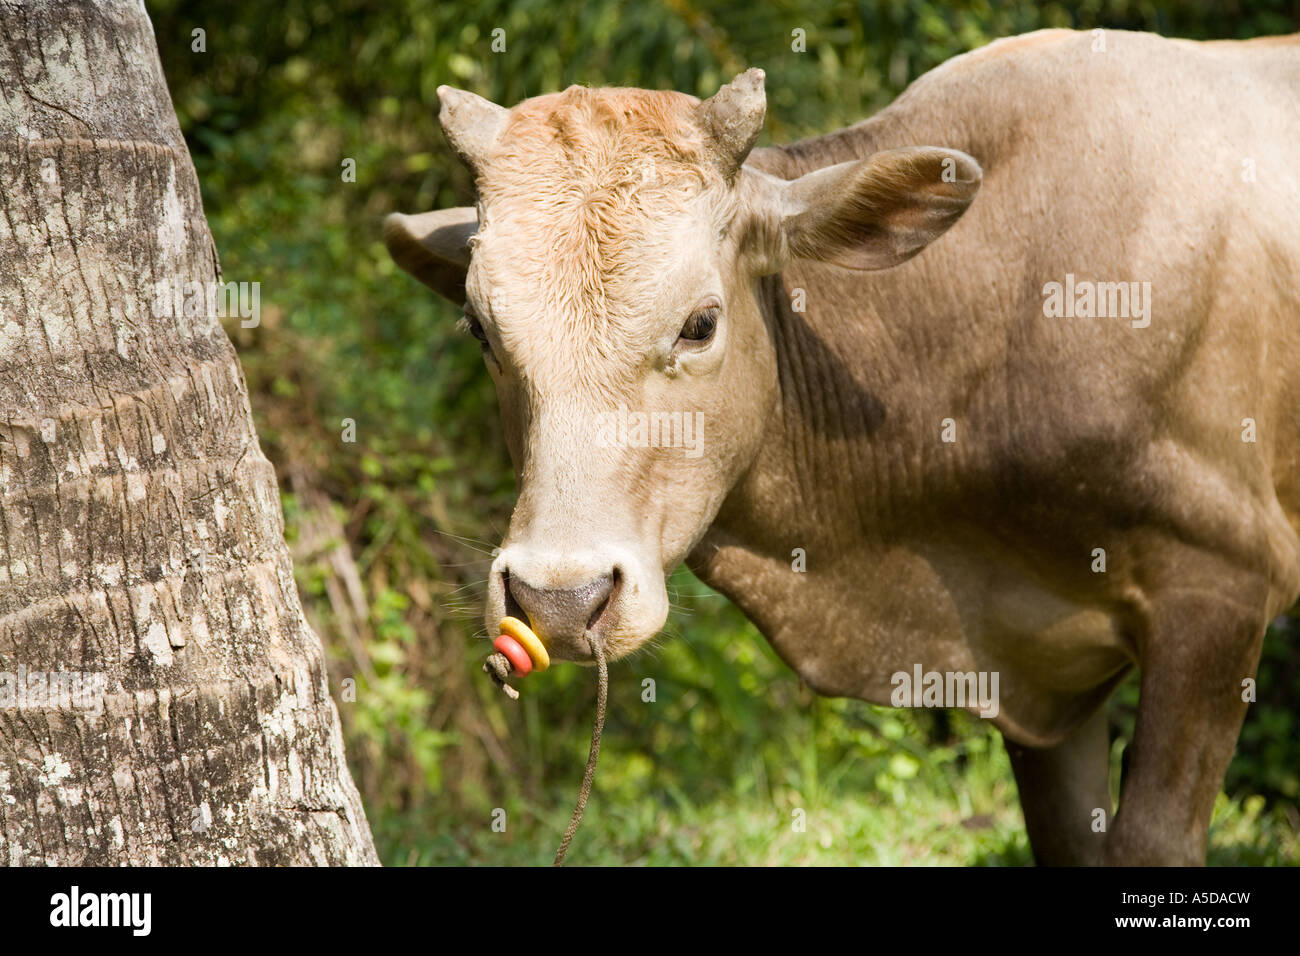 Cow Tethered, by the nose. An Asian bovine farm animal secured for grazing in Krabi town Province Thailand - Stock Image